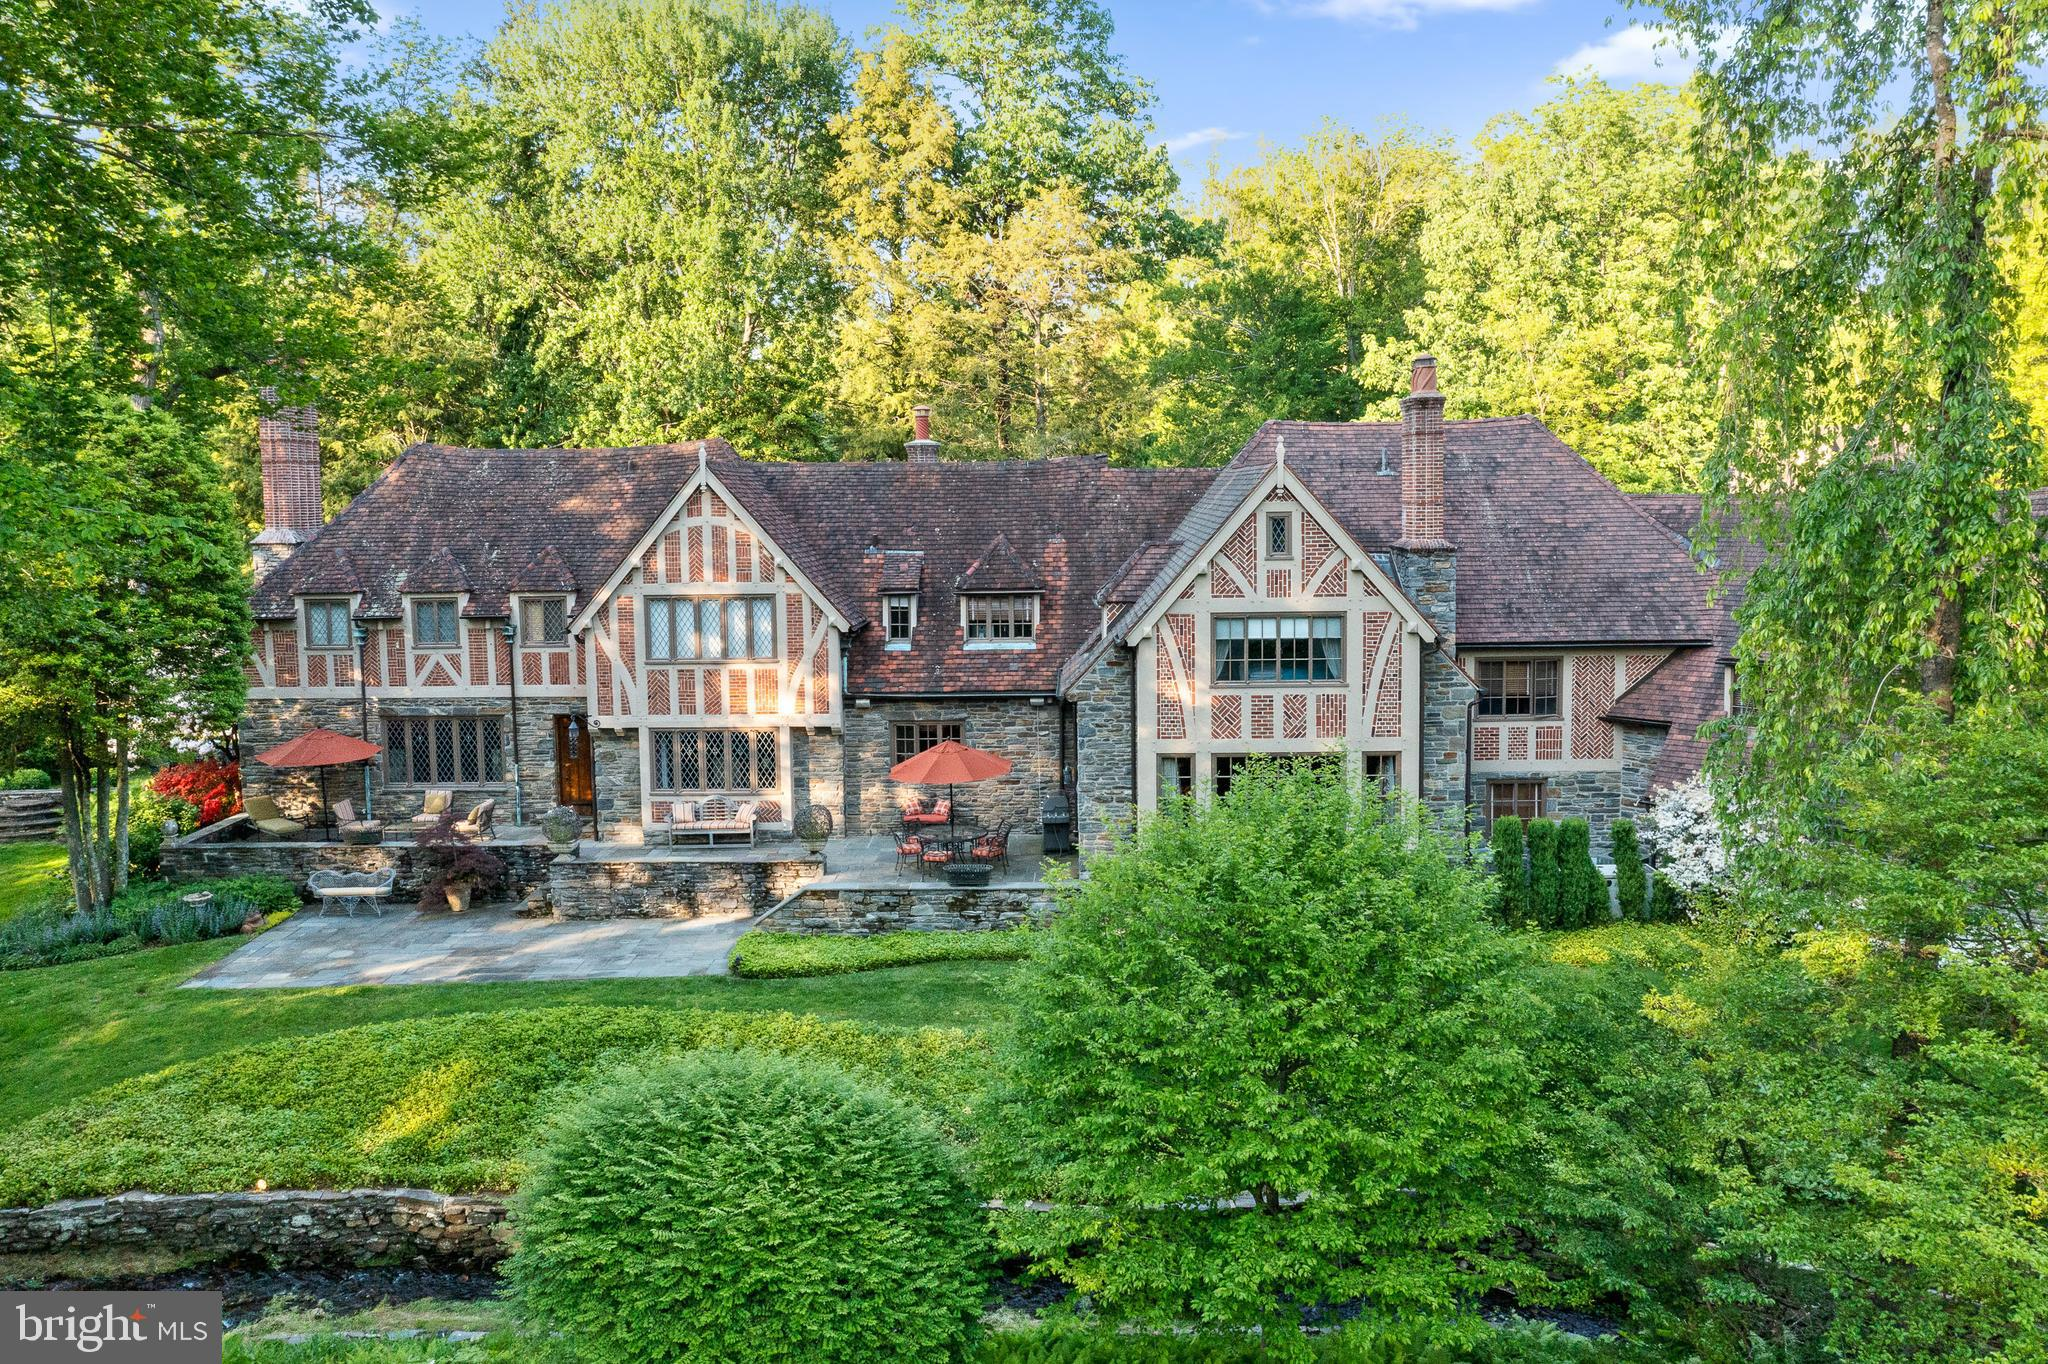 This impeccably renovated and maintained estate home sits on a beautiful, quiet, sought after cul-de-sac street.  This is truly a coveted prime Northside Lower Merion location making this home incomparable in every way.  The original home was built in the Tudor Style circa 1935 by Frank Wilson, a prominent Main Line Builder known for his expertise in structural engineering, truly the glory days of home building.  This home features fine craftsmanship, attention to detail, superior materials, exceptional scale, millwork and stonework very rarely seen in contemporary building trades.  Peter Zimmerman Architects  worked closely with the owners to renovate and substantially expand this home to accommodate a growing family while enhancing the past glory of this beautiful home.  A delightful stream meanders across the front of the property, and the siting of this home allows for truly lovely views of the steam and the expansive grounds from many of the rooms.  A long private drive brings you to an impressive entrance courtyard where you will notice that the addition in this section and courtyard were angled away from the main house to follow the path of the stream and create and expansive approach. The owner worked very closely with the architect to ensure preservation of the original details and integrate award winning details, materials, proportions and layout so finely that only a well-trained architectural historian can tell them apart.  The clay roof tiles were custom made by Ludowici, the same company that manufactured the original tiles, to ensure a perfect match.   The original steel windows were restored, and new ones were reproduced to match, while the extraordinary decorative brickwork and stonework, half timbering, wood and stone details inside and out make it nearly impossible to find the intersection between the original and new construction. The transition on the inside and out is seamless.   Beech Road, Bryn Mawr is a truly coveted location enjoying a very